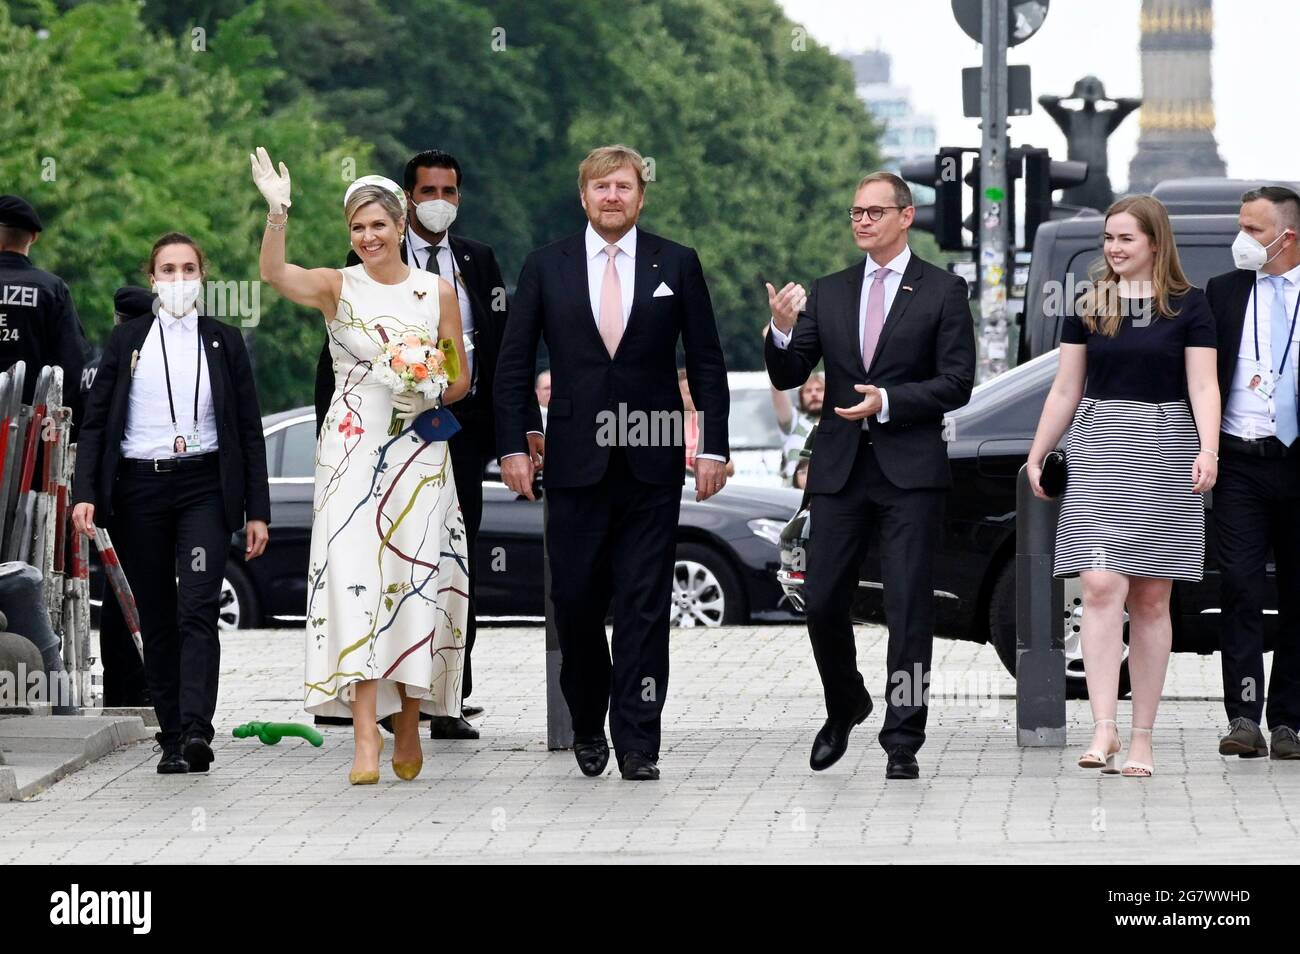 Queen Maxima, King Willem-Alexander of The Netherlands and Michael Mueller visit the Brandenburger Tor on July 5, 2021 in Berlin, Germany. Stock Photo